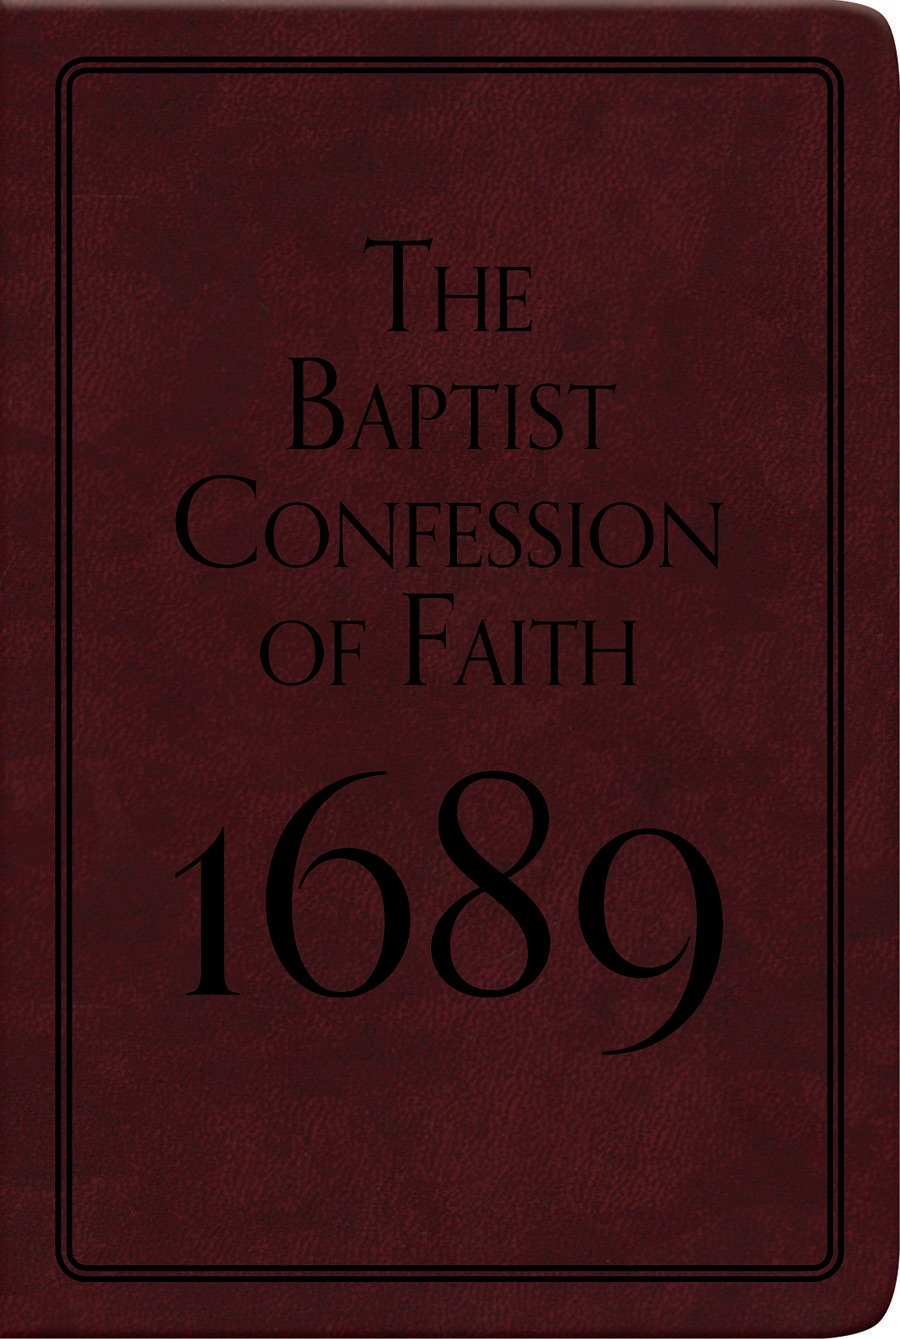 The Baptist Confession of Faith